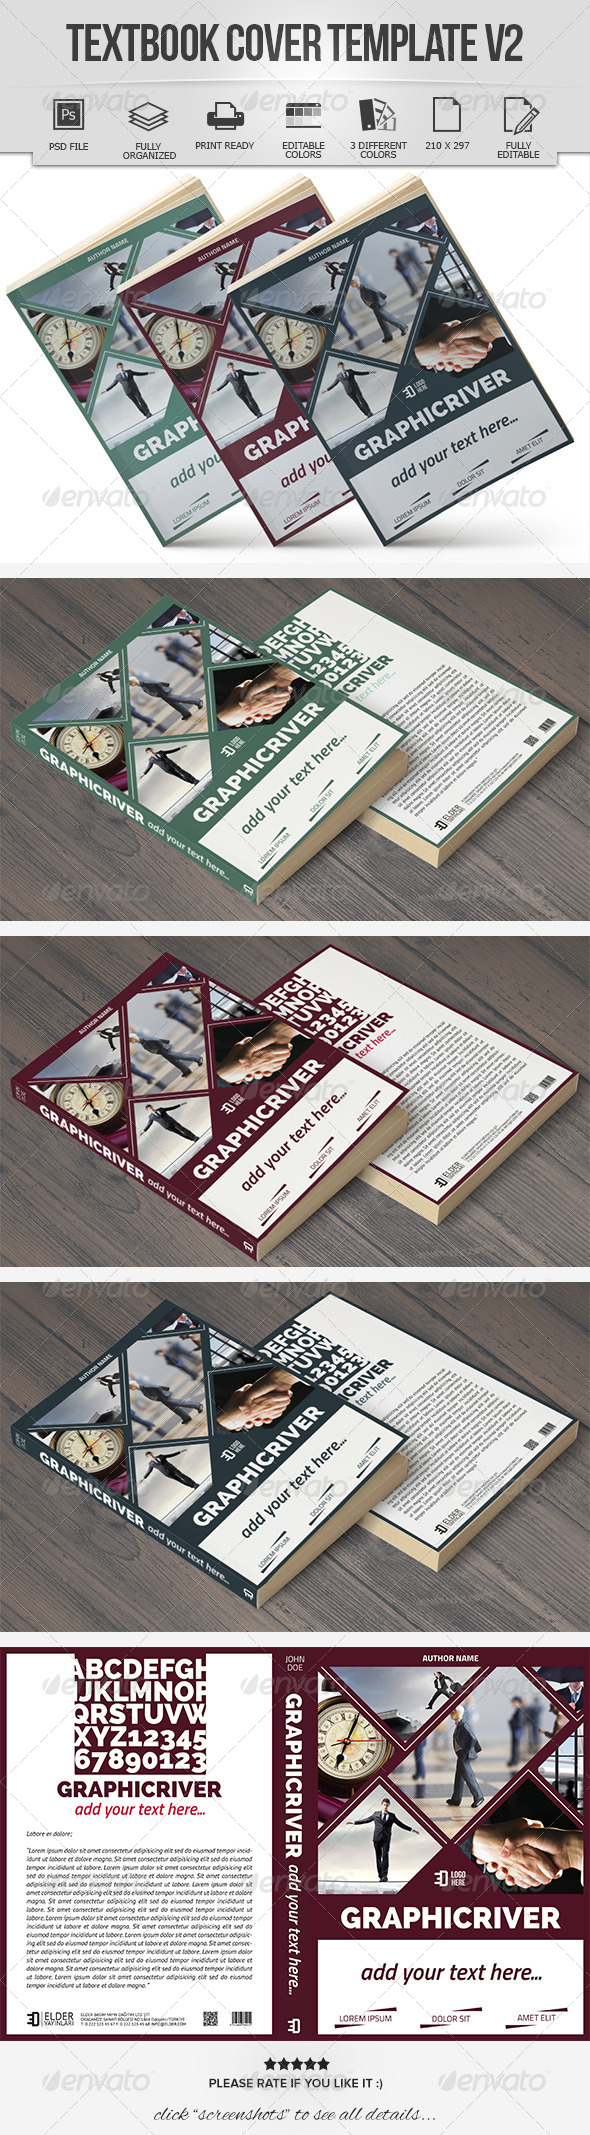 Textbook Cover Template V2 - Miscellaneous Print Templates